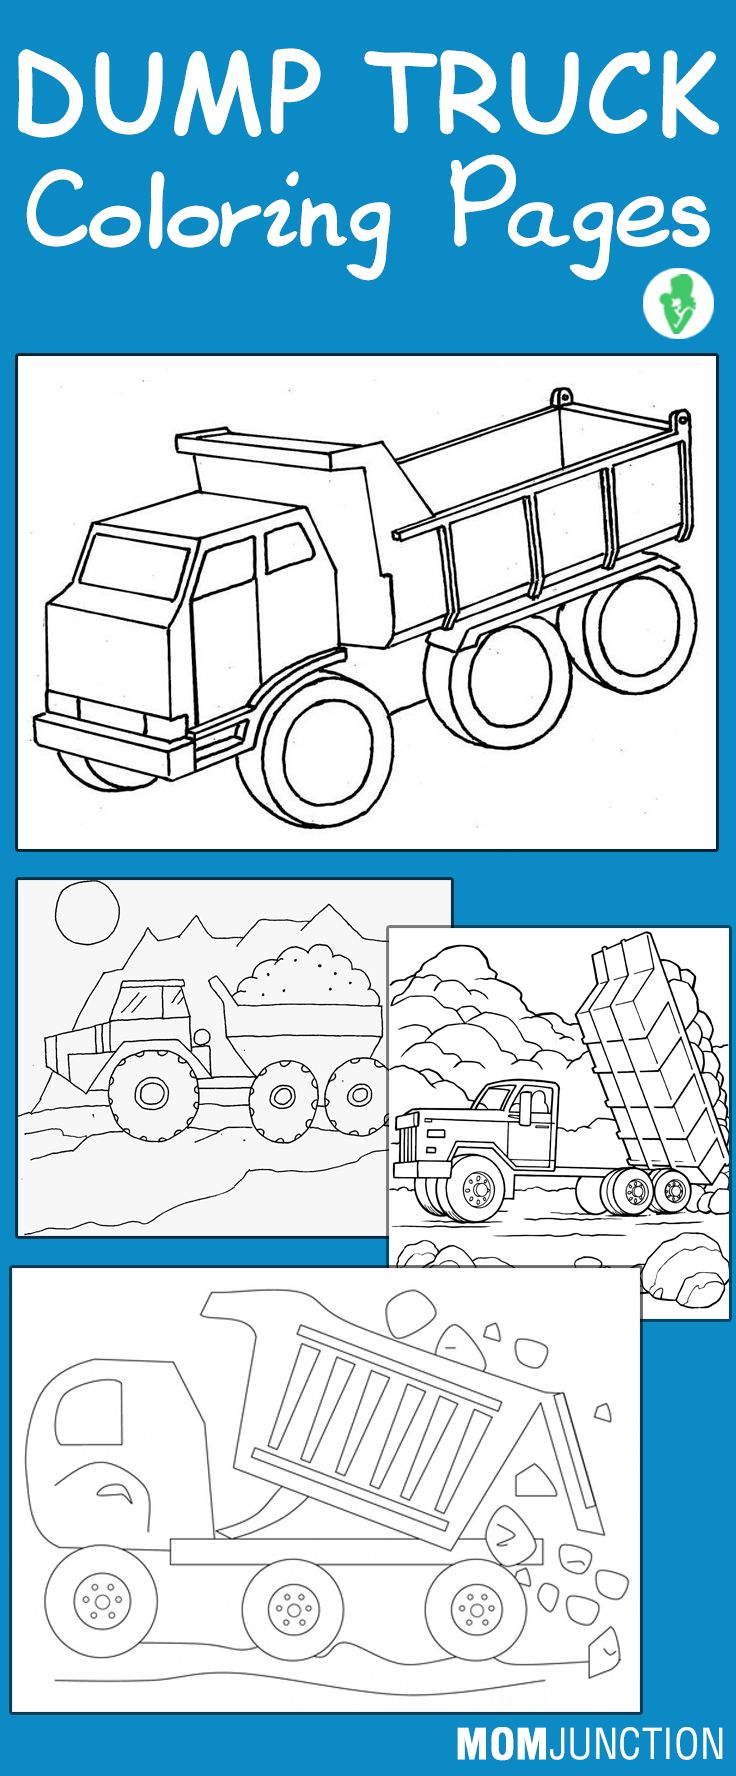 Top 10 Free Printable Dump Truck Coloring Pages Online | Coloring ...